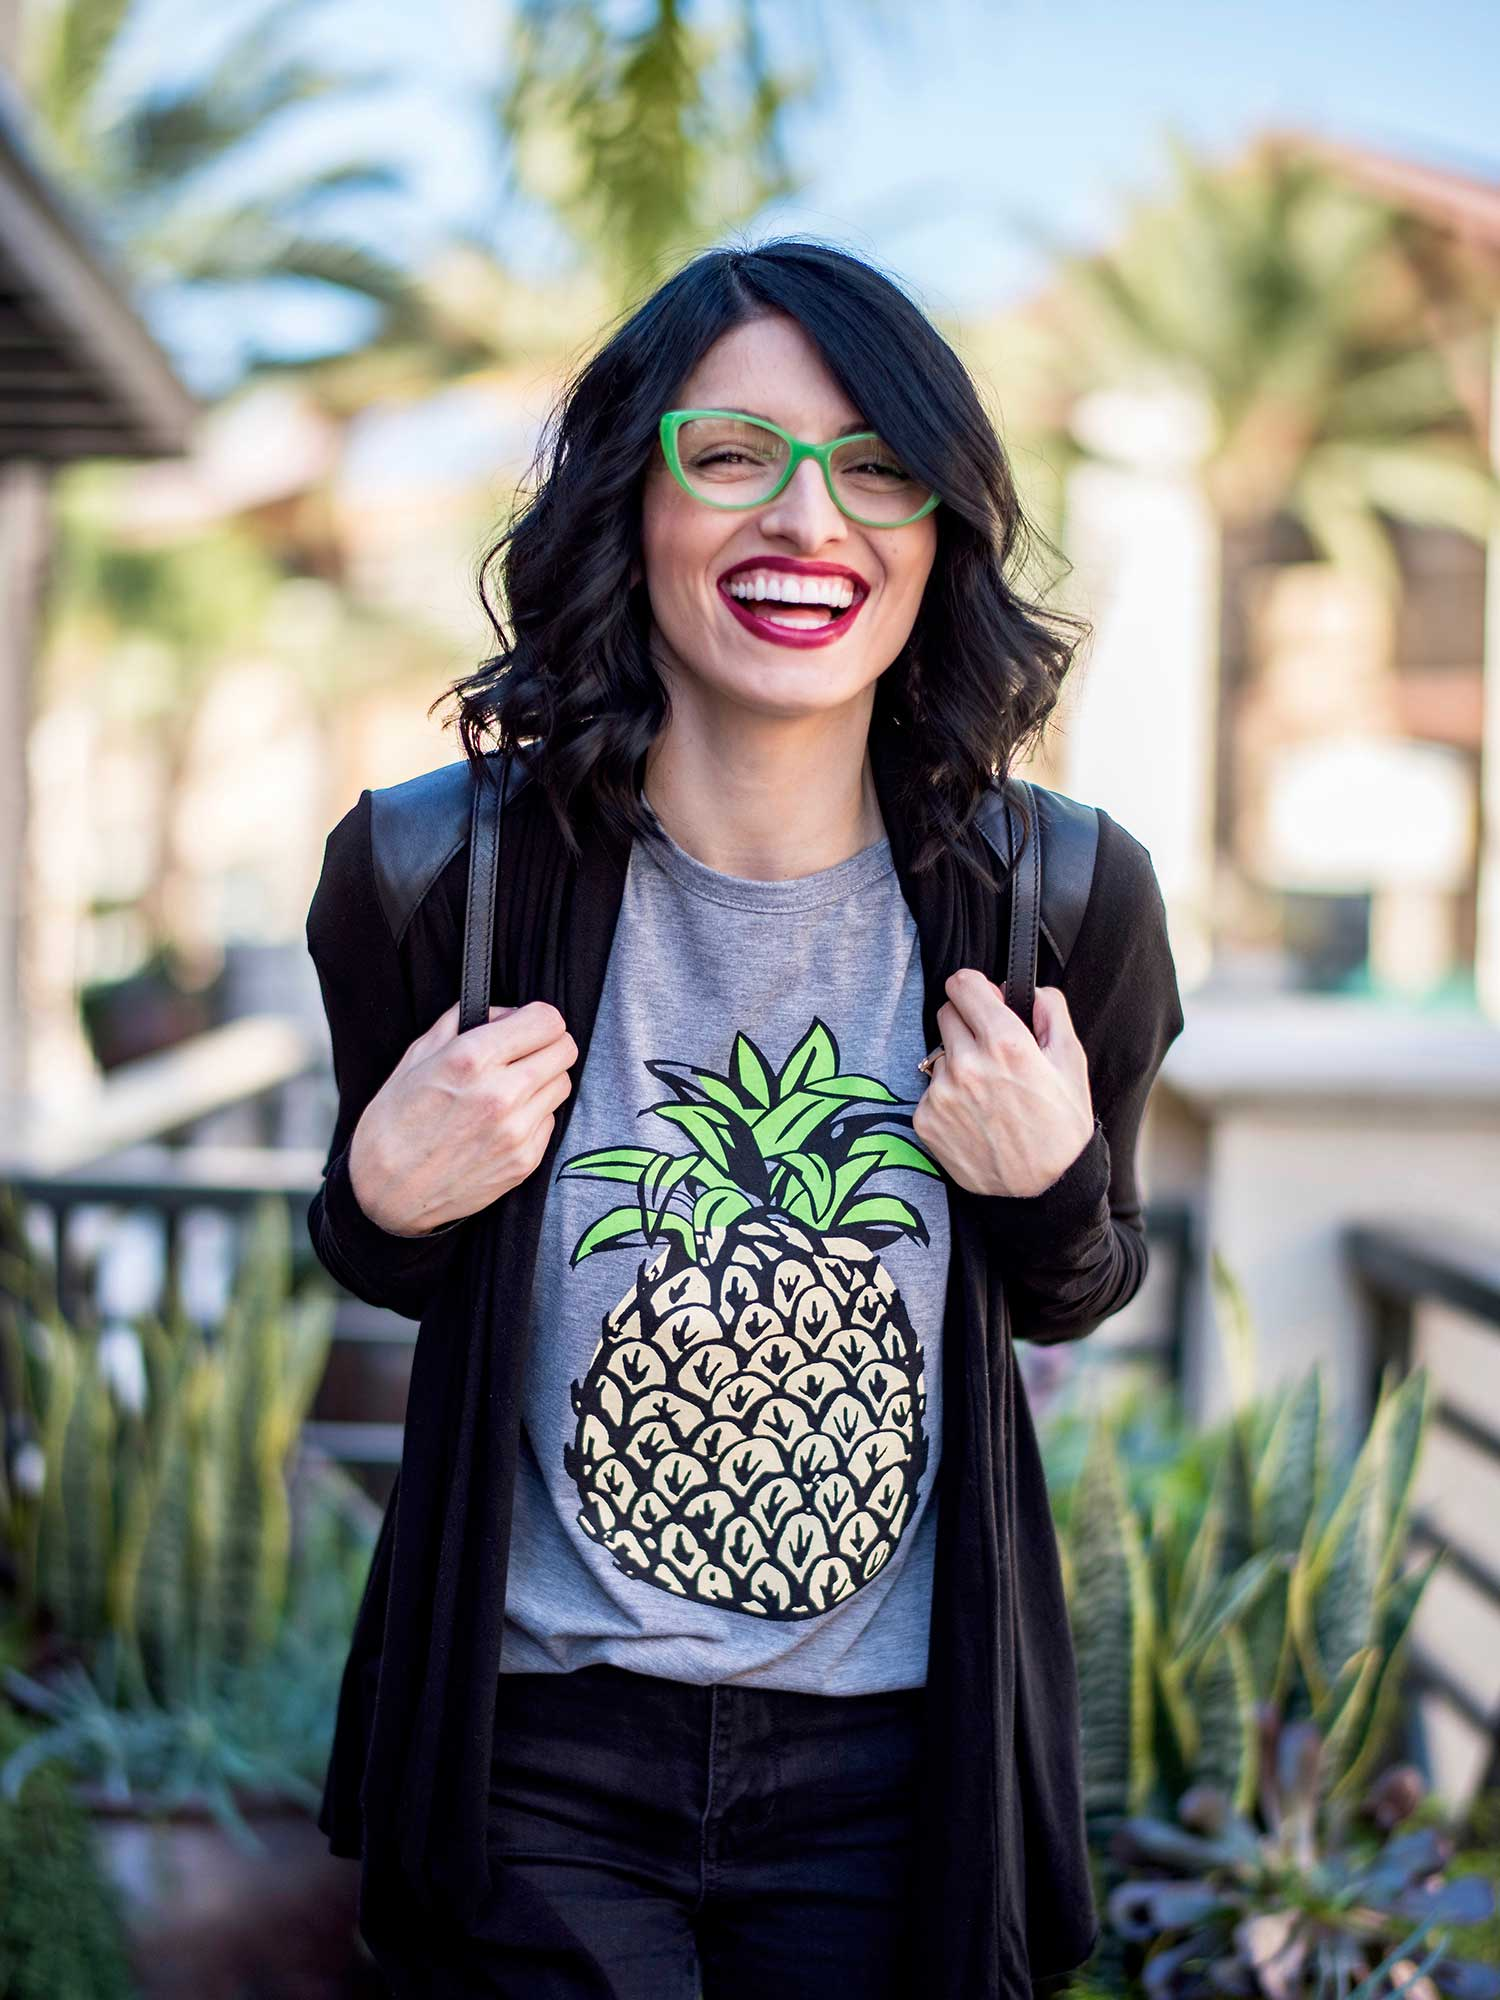 jenna-pilant-san-diego-fashion-blogger-lucky-little-mustardseed-how-to-wear-your-favorite-summer-t-shirt-in-the-fall-5